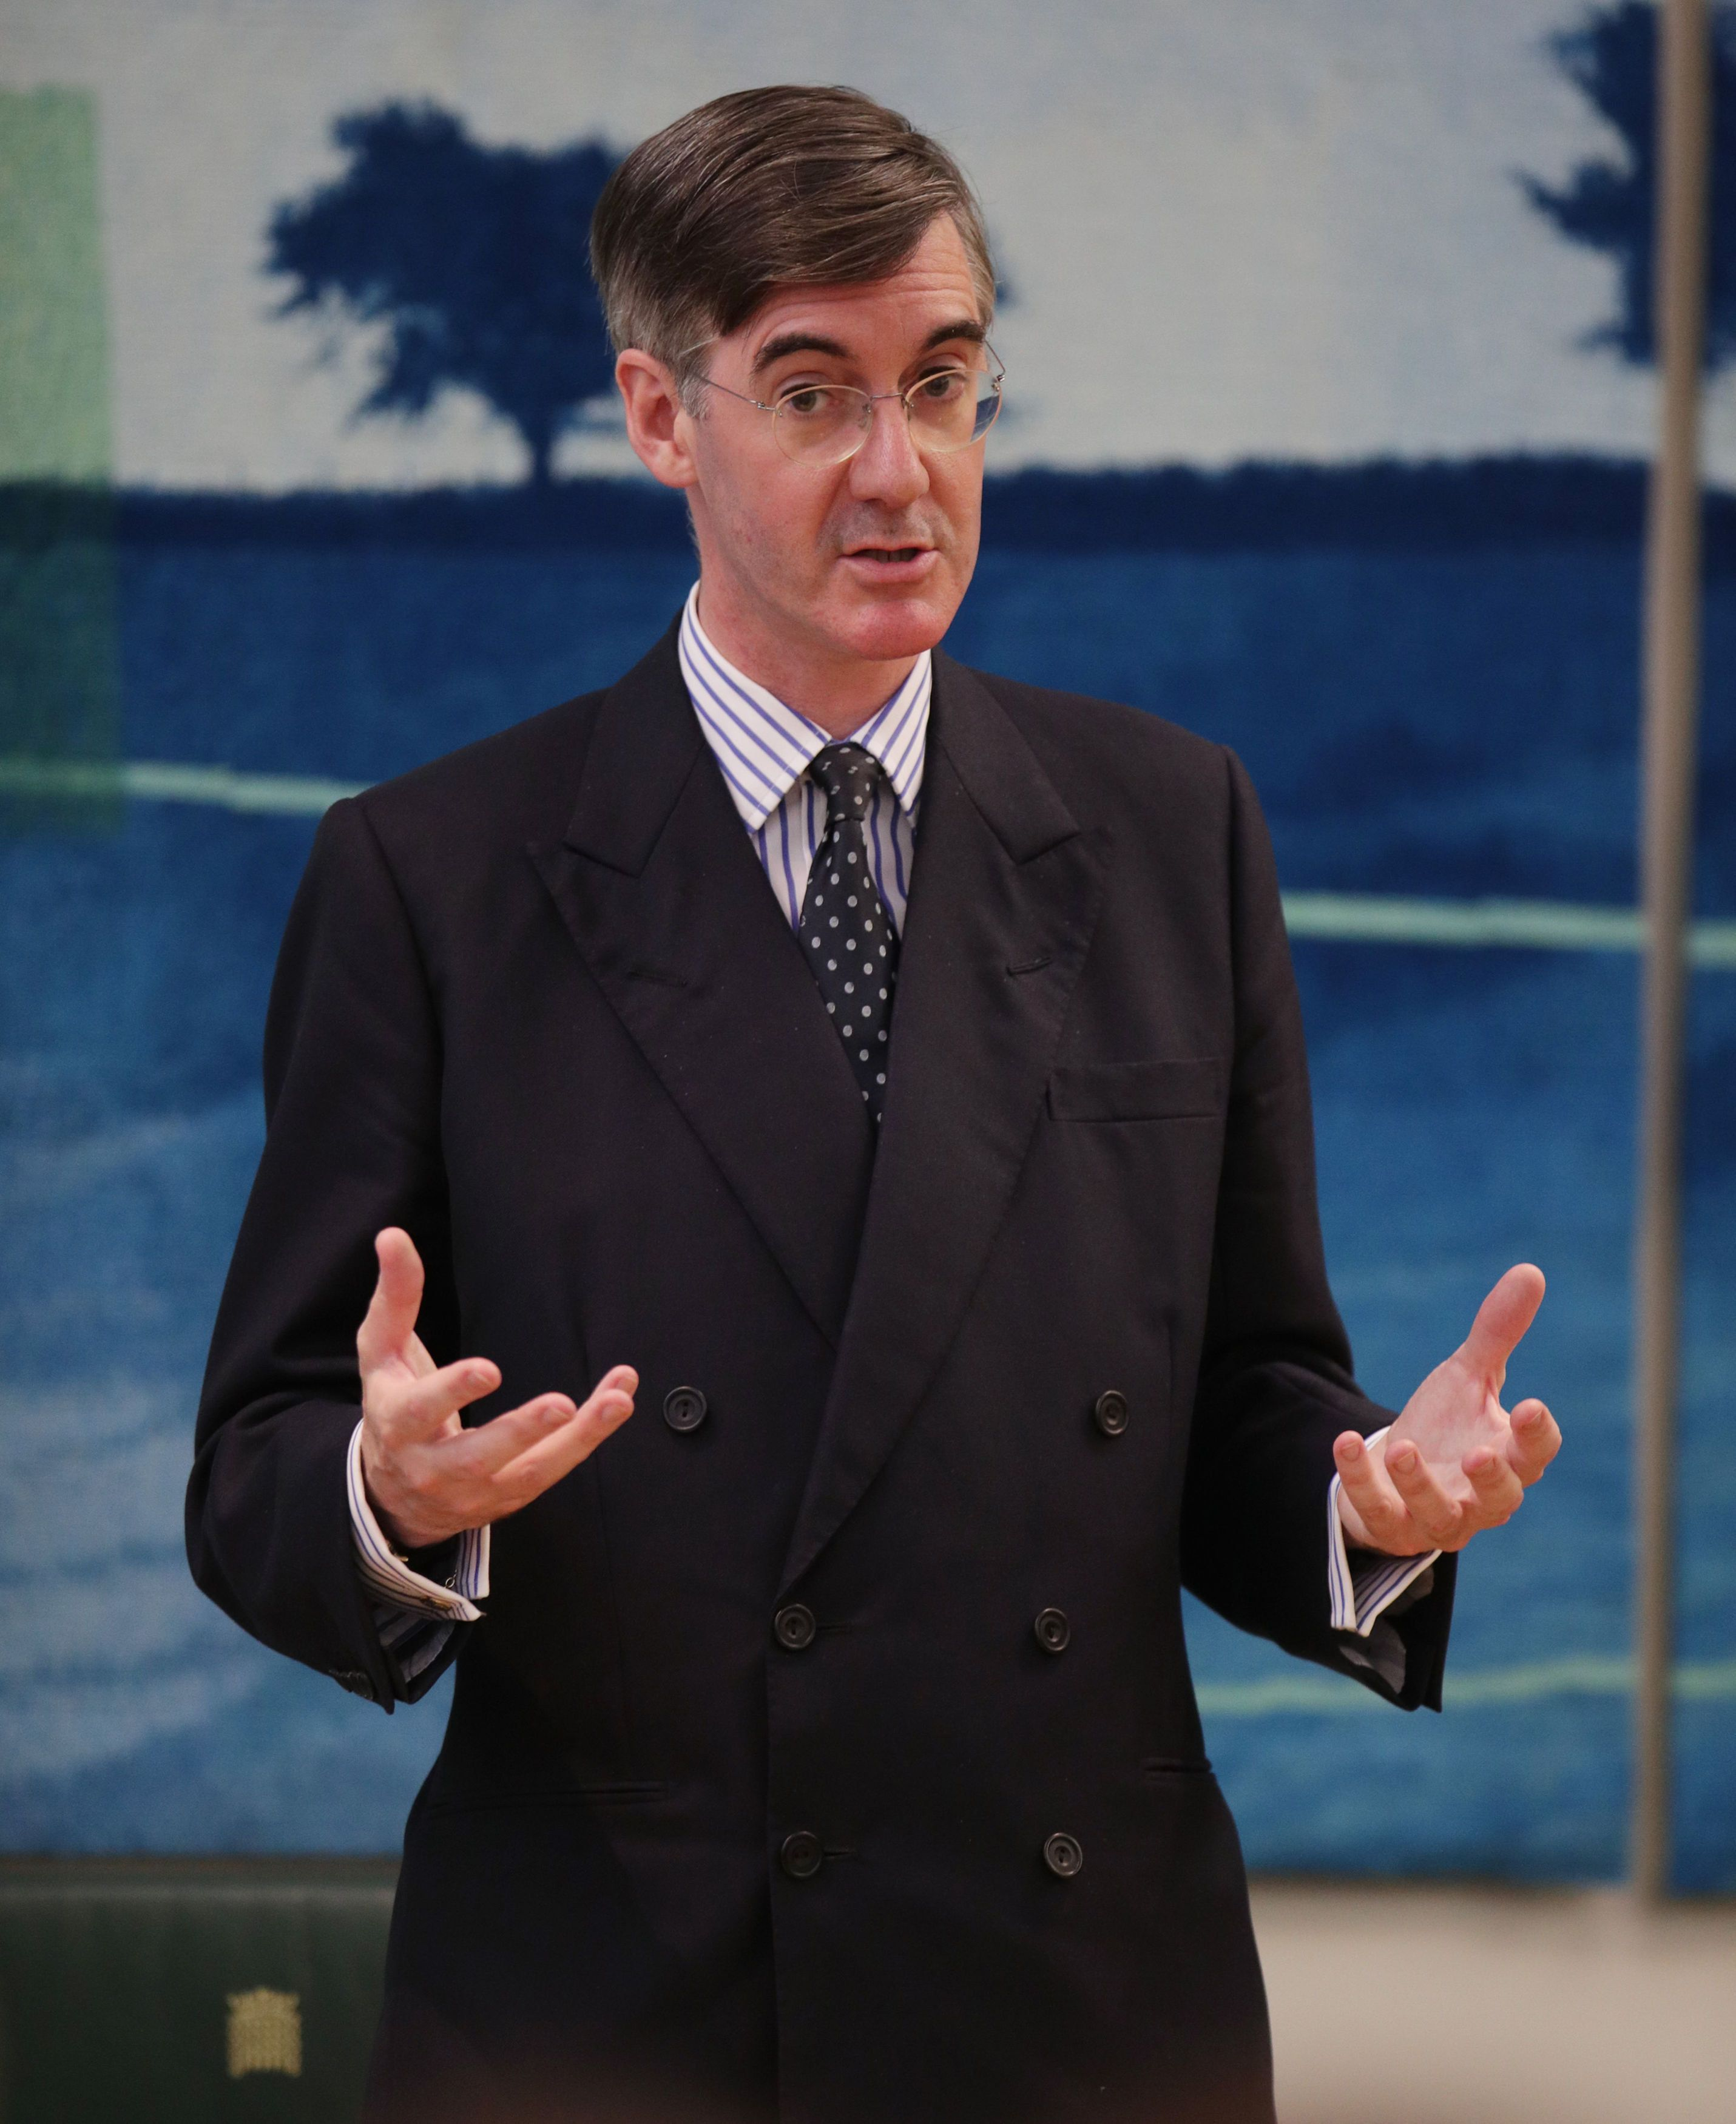 Jacob Rees-Mogg was challenged over his staunch Catholic